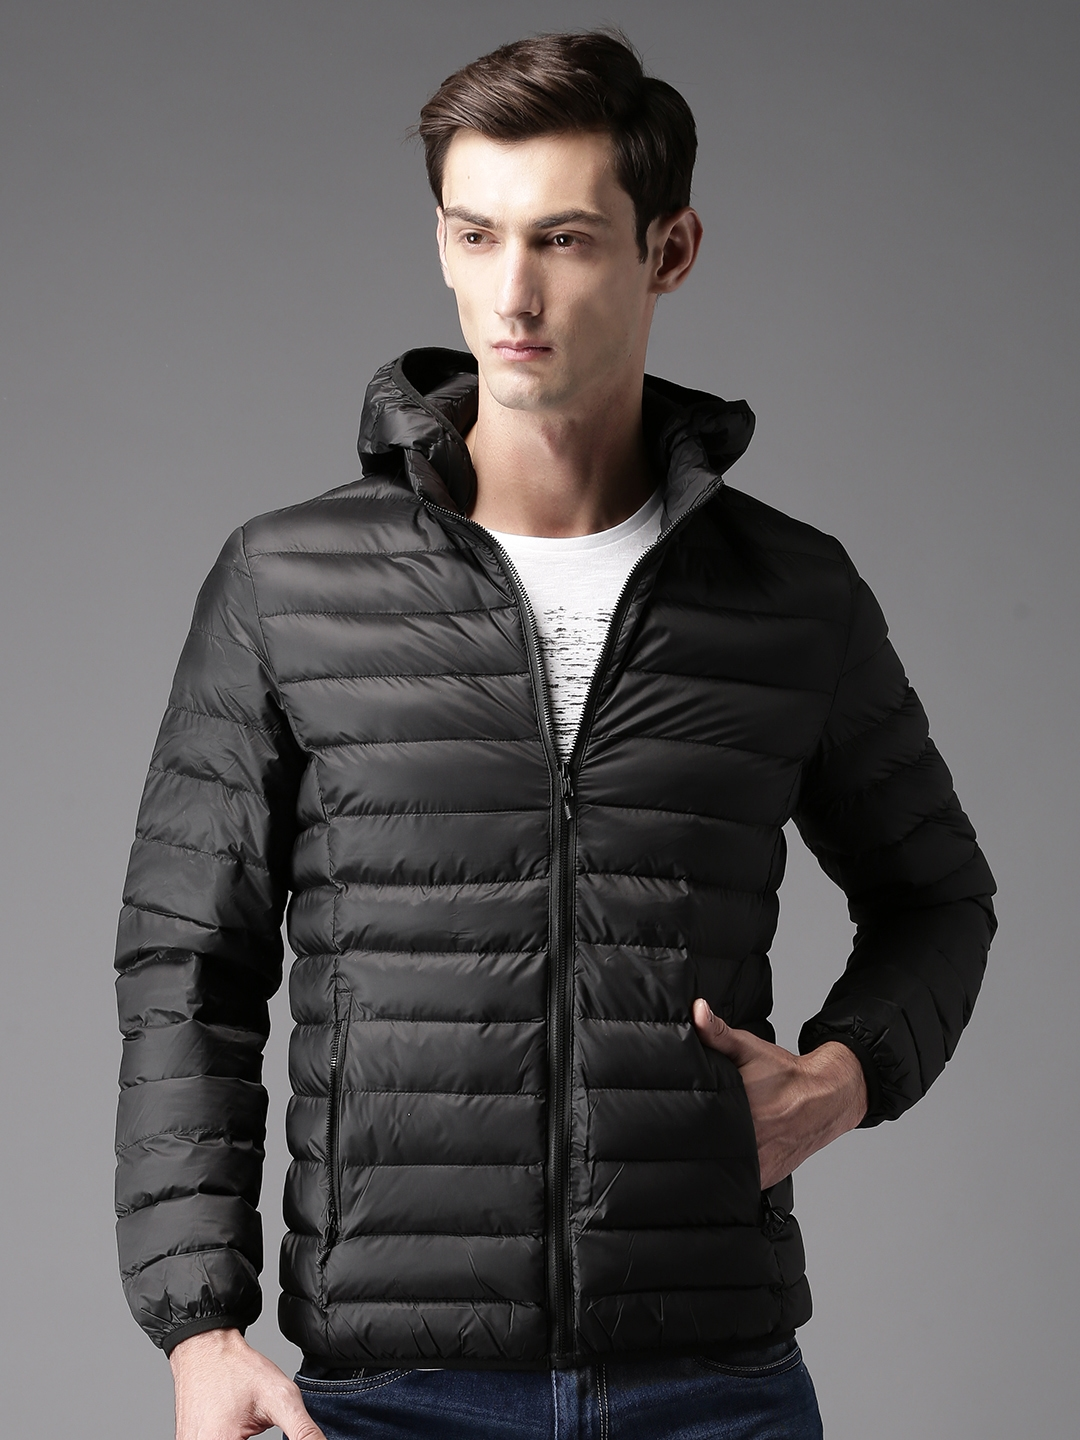 364e6a03 Buy HERE&NOW Men Black Solid Puffer Jacket With Detachable Hood ...